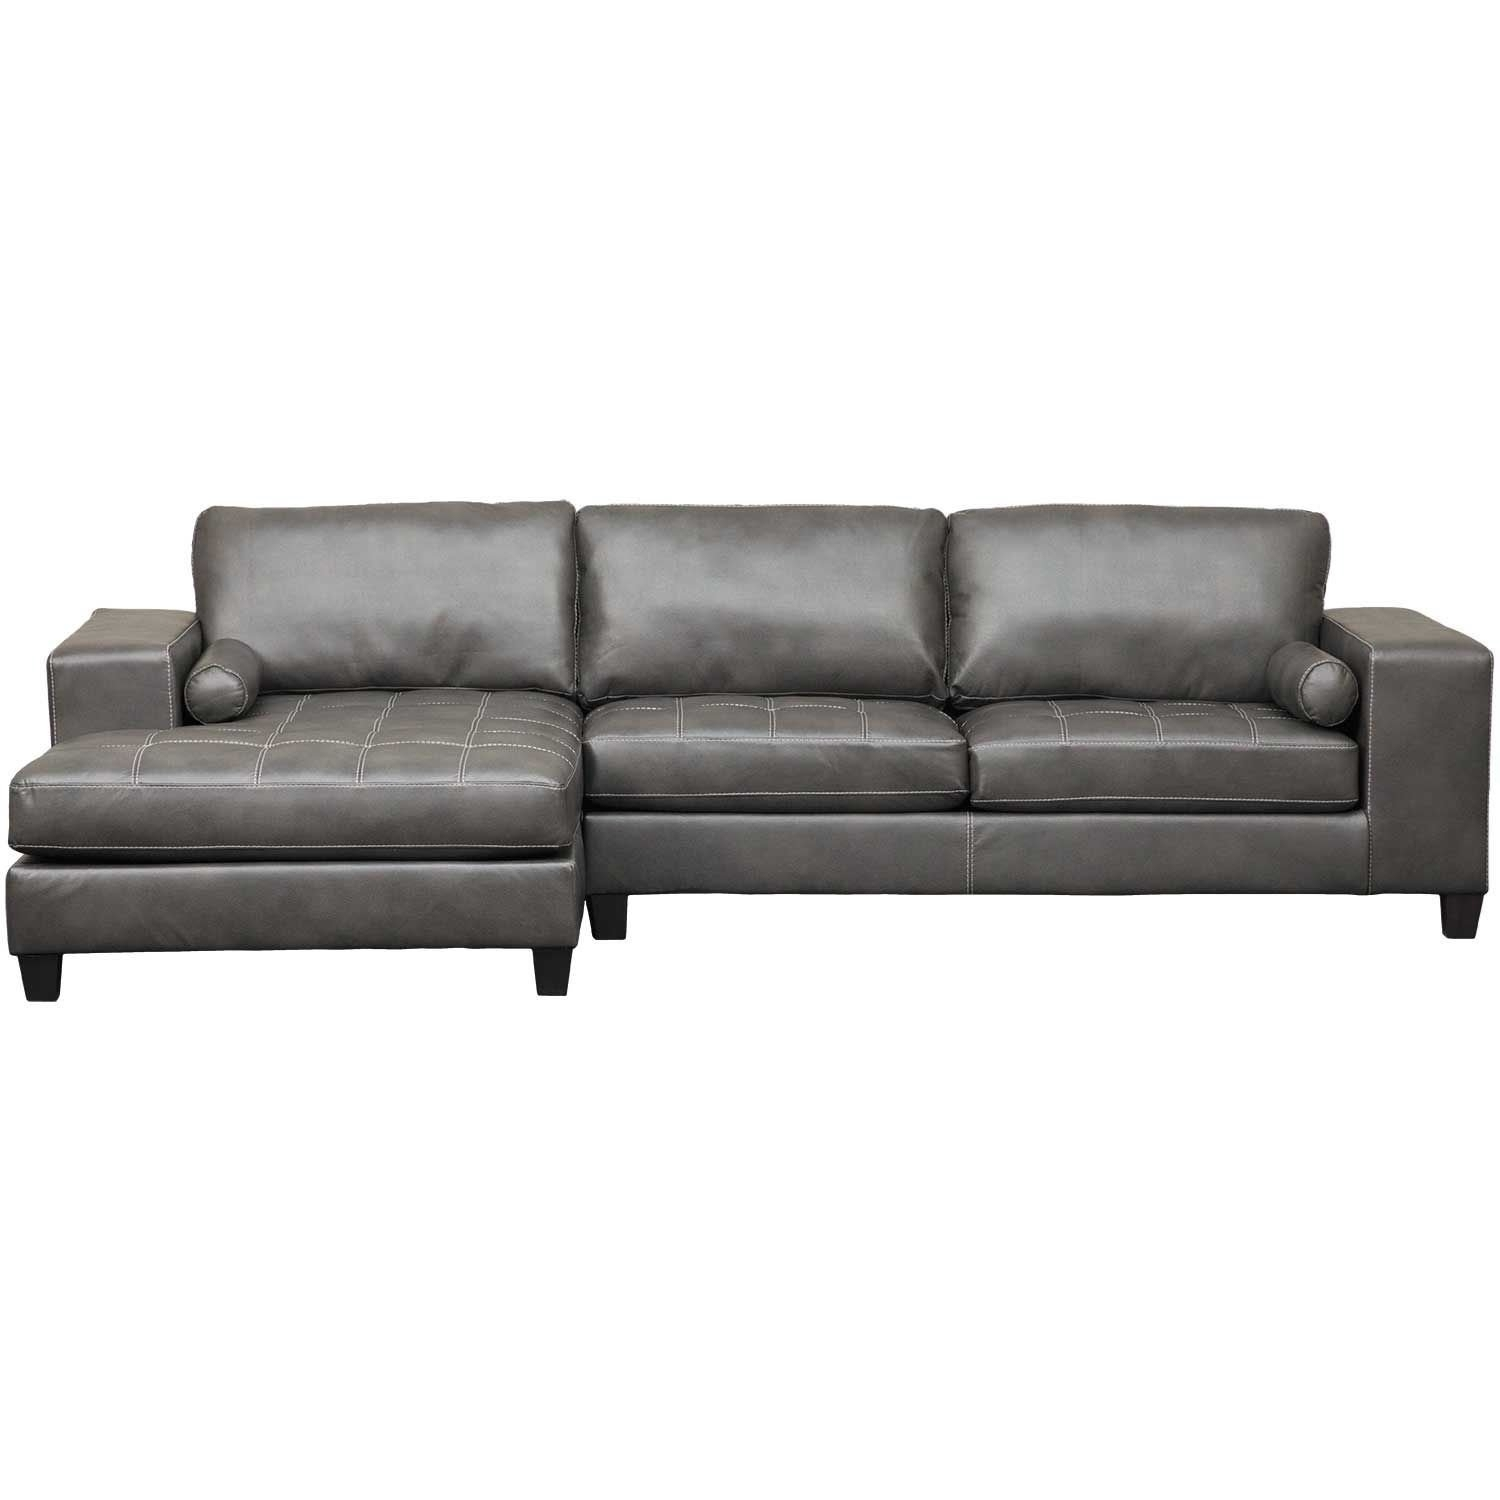 Nokomis 2 Piece Sectional With Laf Chaise | 8770116/8770167 | Ashley with regard to Cosmos Grey 2 Piece Sectionals With Laf Chaise